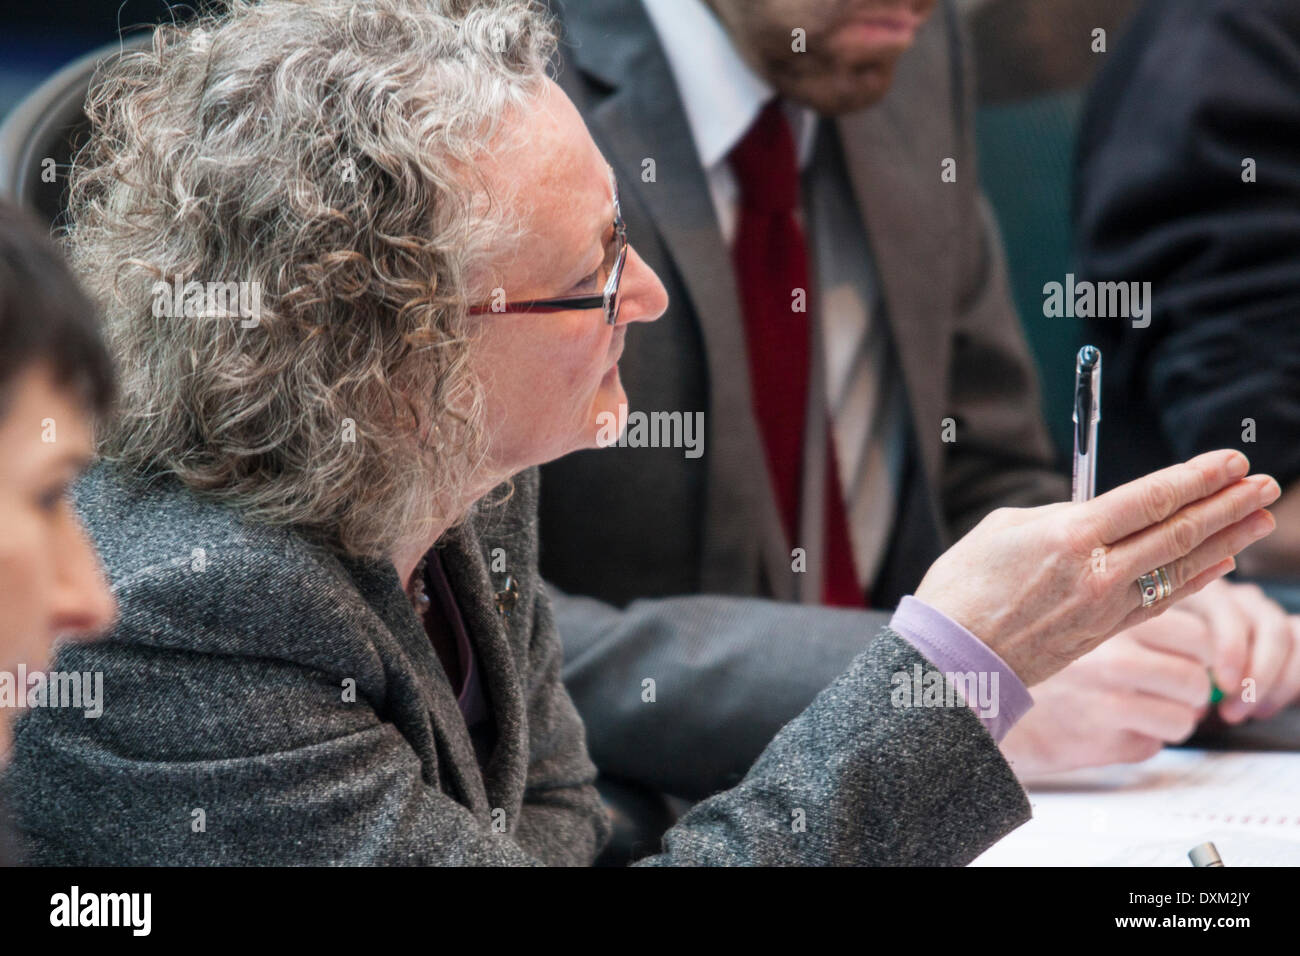 London, March 27th 2014. The Green Party's Jenny Jones, a member of the Police and Crime Committee of the London Assembly questions the Mayor of London on undercover policing and the governance of the Metropolitan Police. Credit:  Paul Davey/Alamy Live News - Stock Image